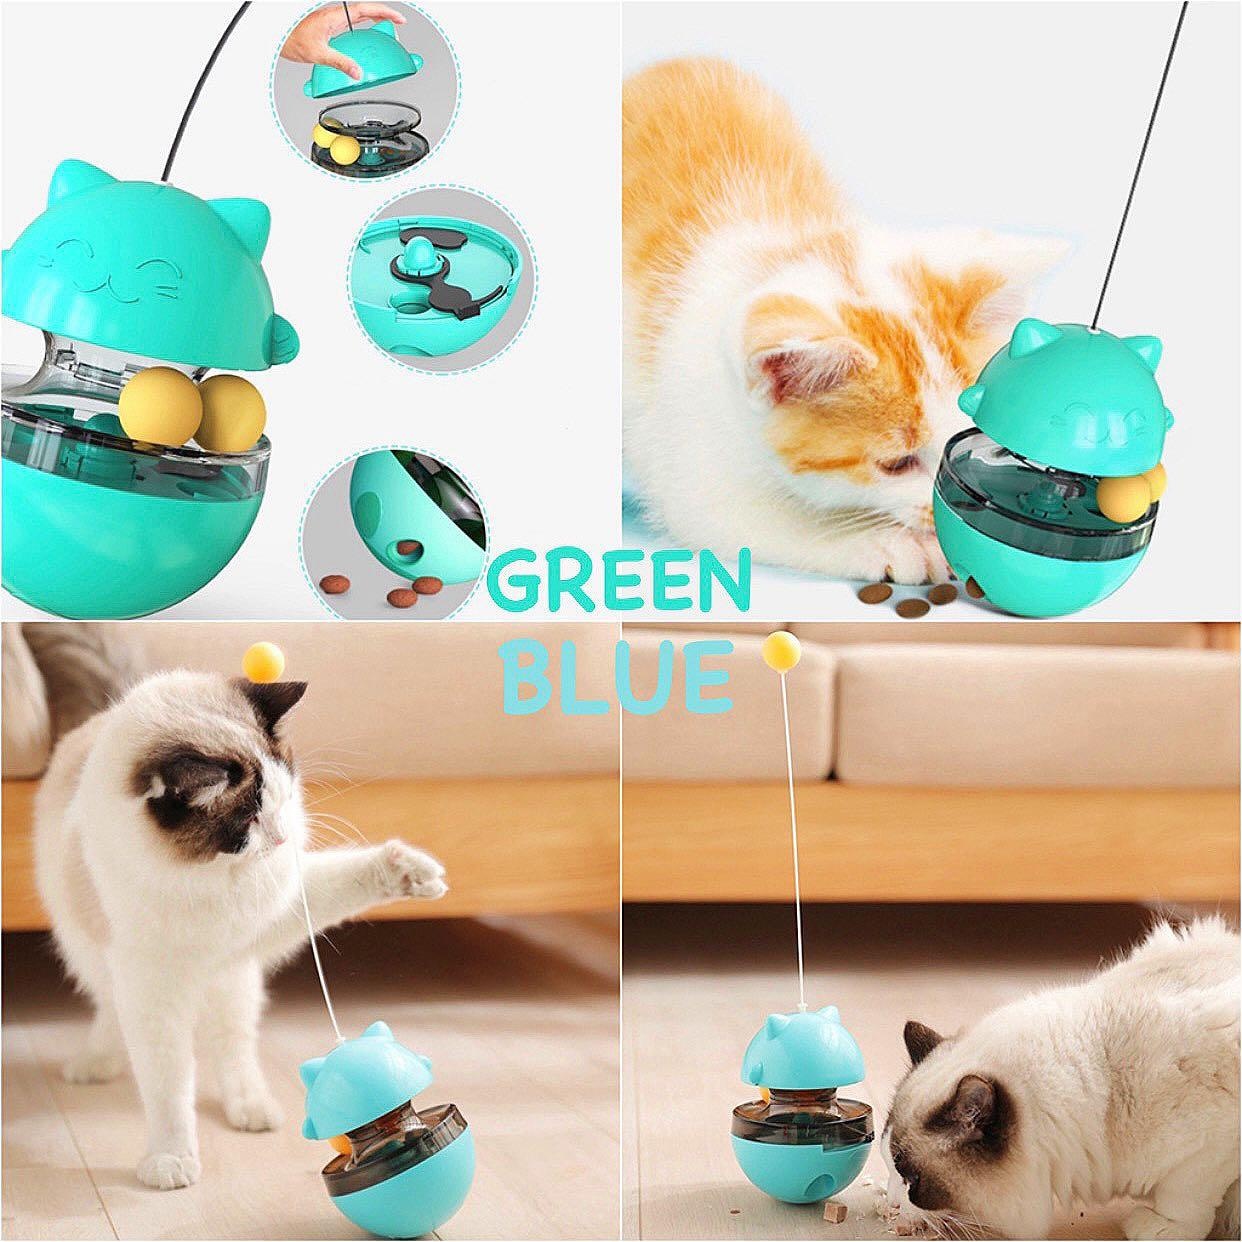 Cat Tumble Toy Food Dispenser With Balls Xx Pet Supplies For Cats Cat Accessories On Carousell